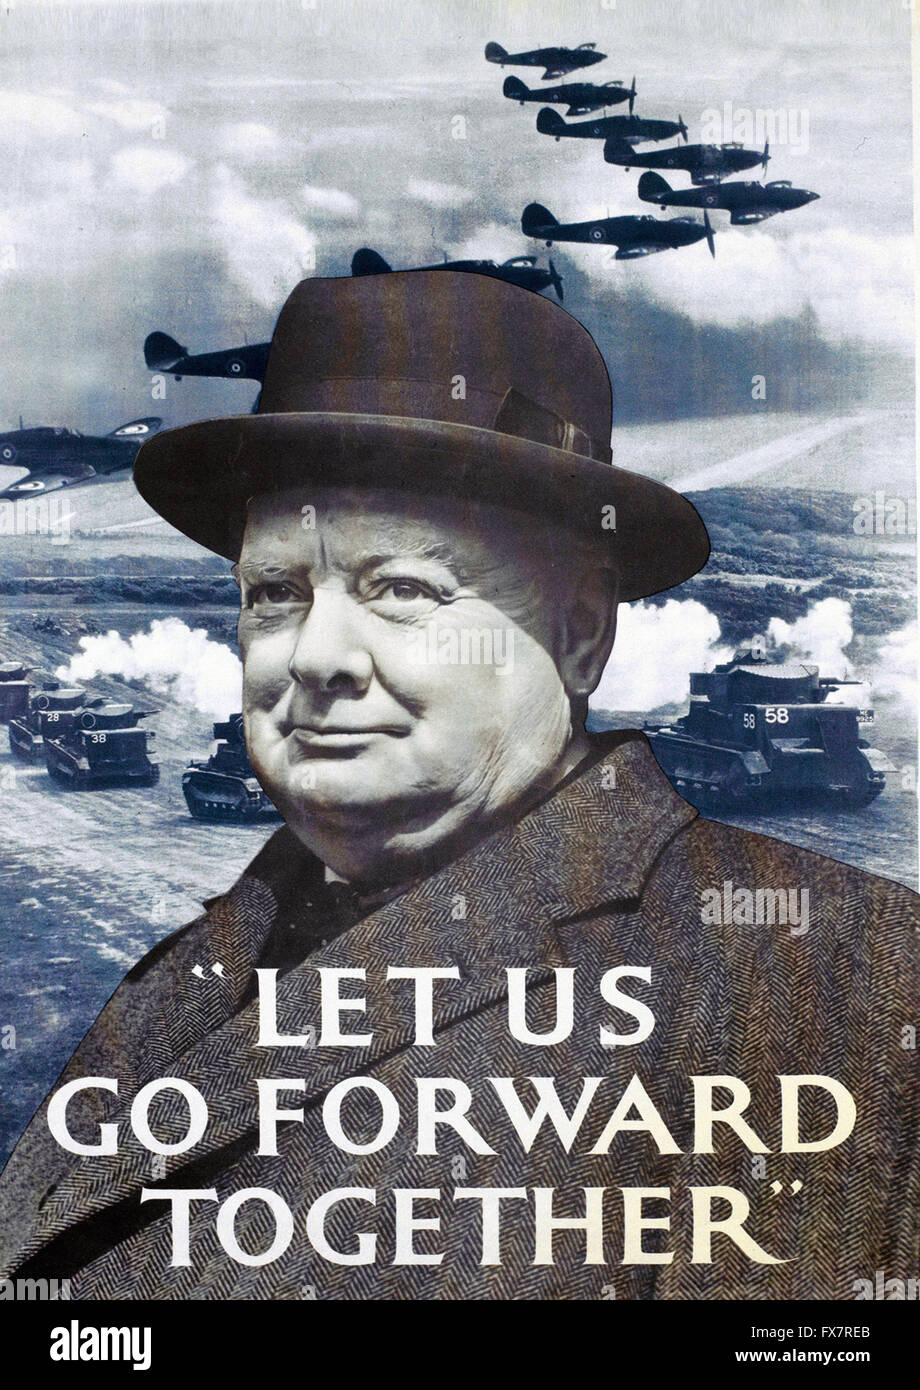 Churchill - World War II - british propaganda Poster - Stock Image